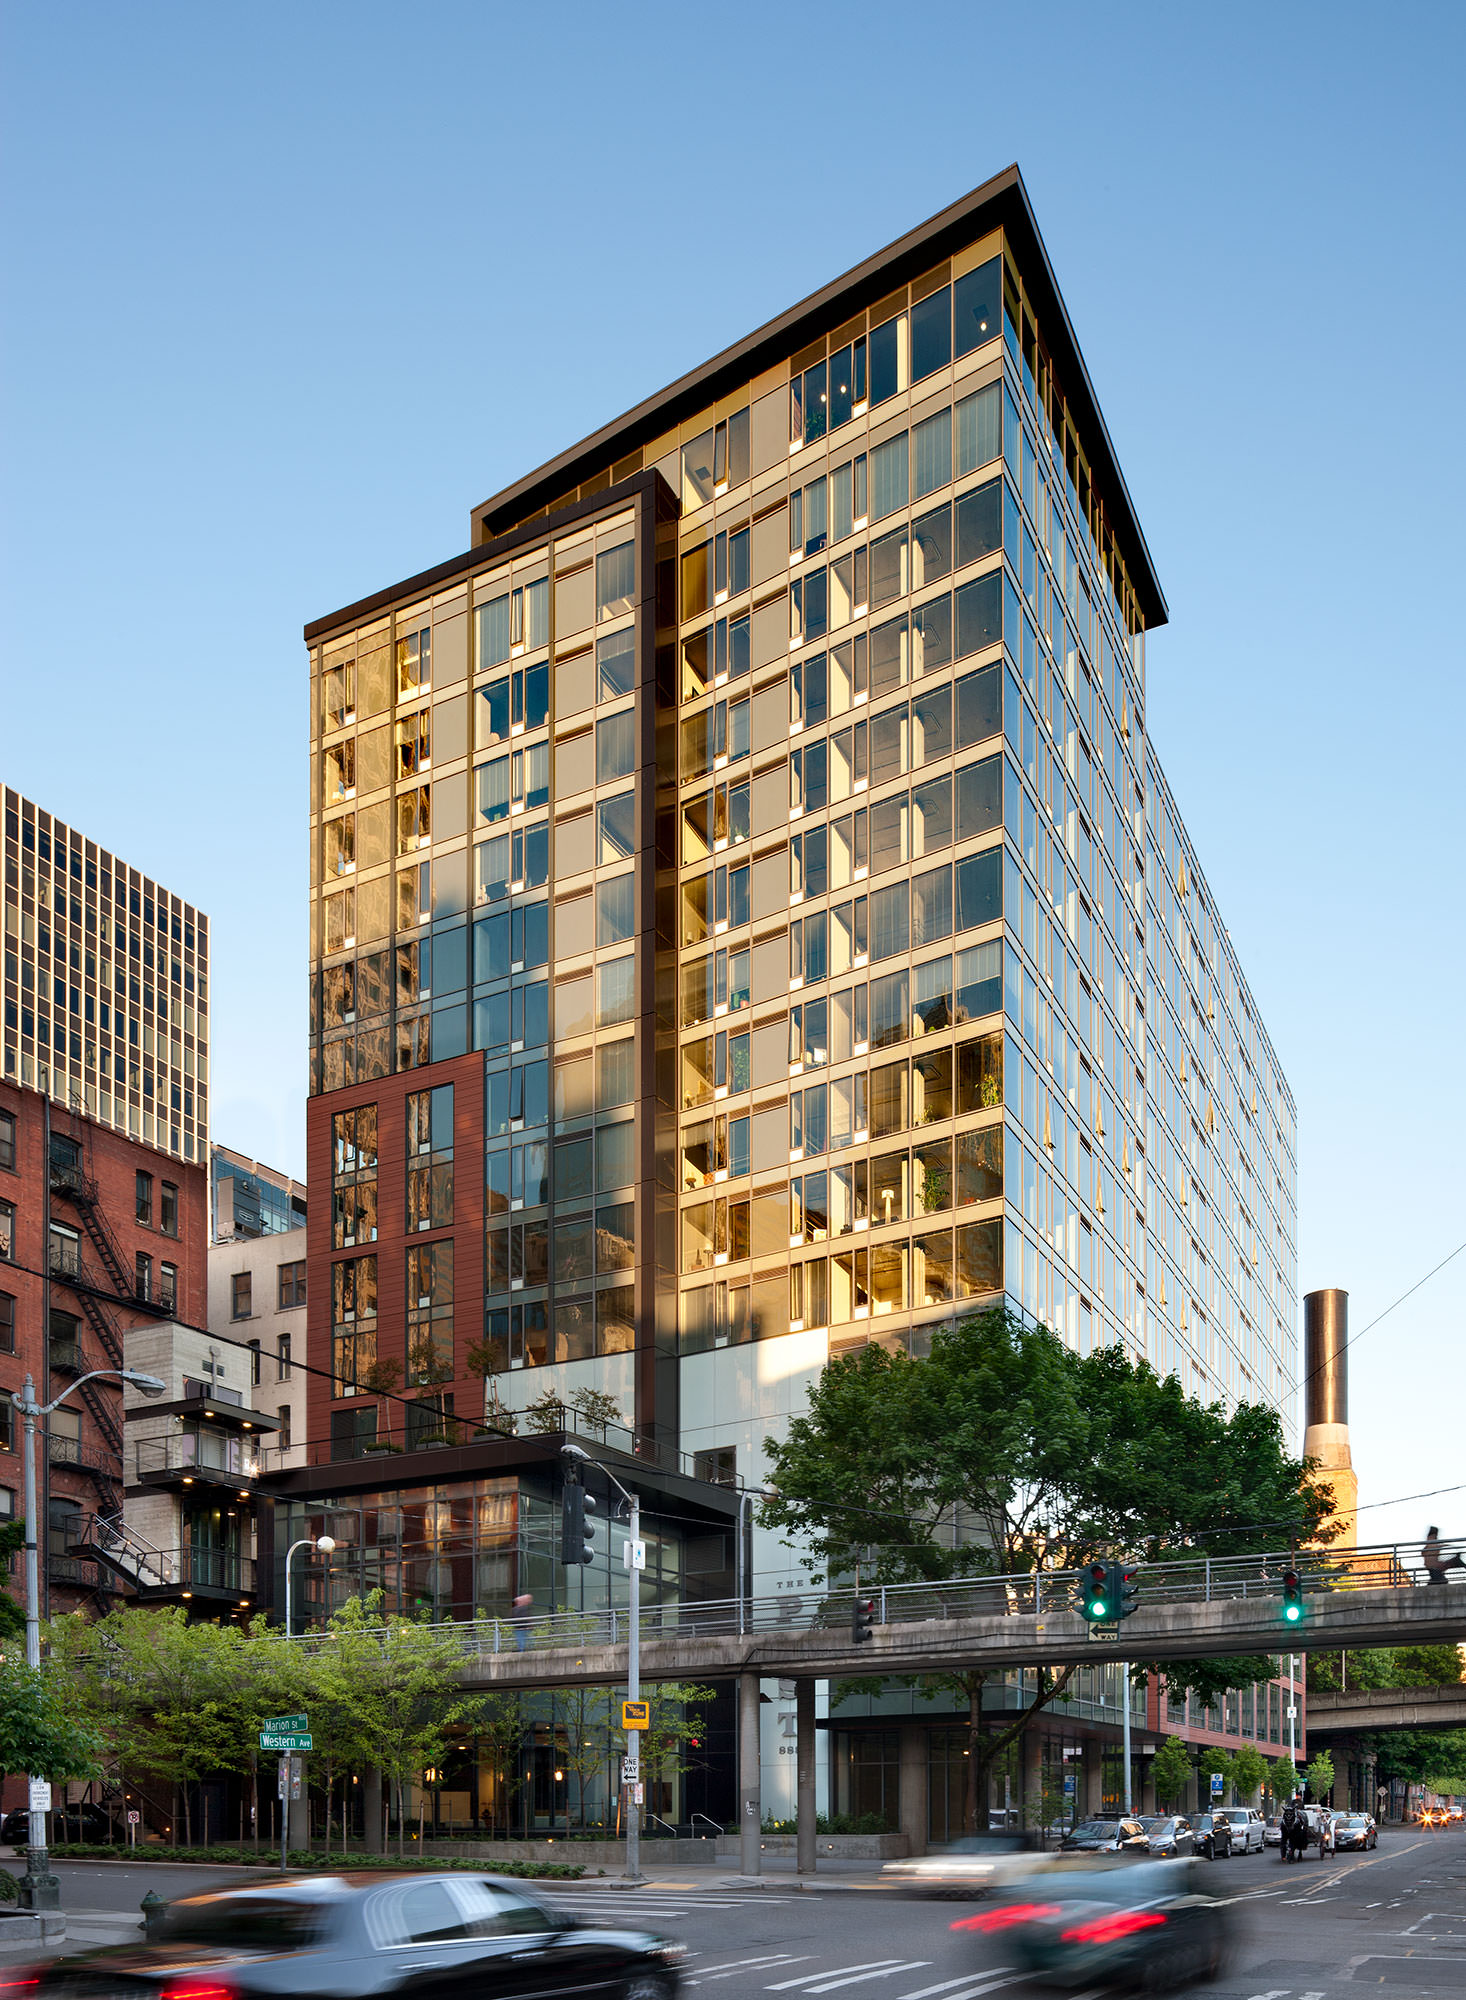 The Post residential tower in Pioneer Square